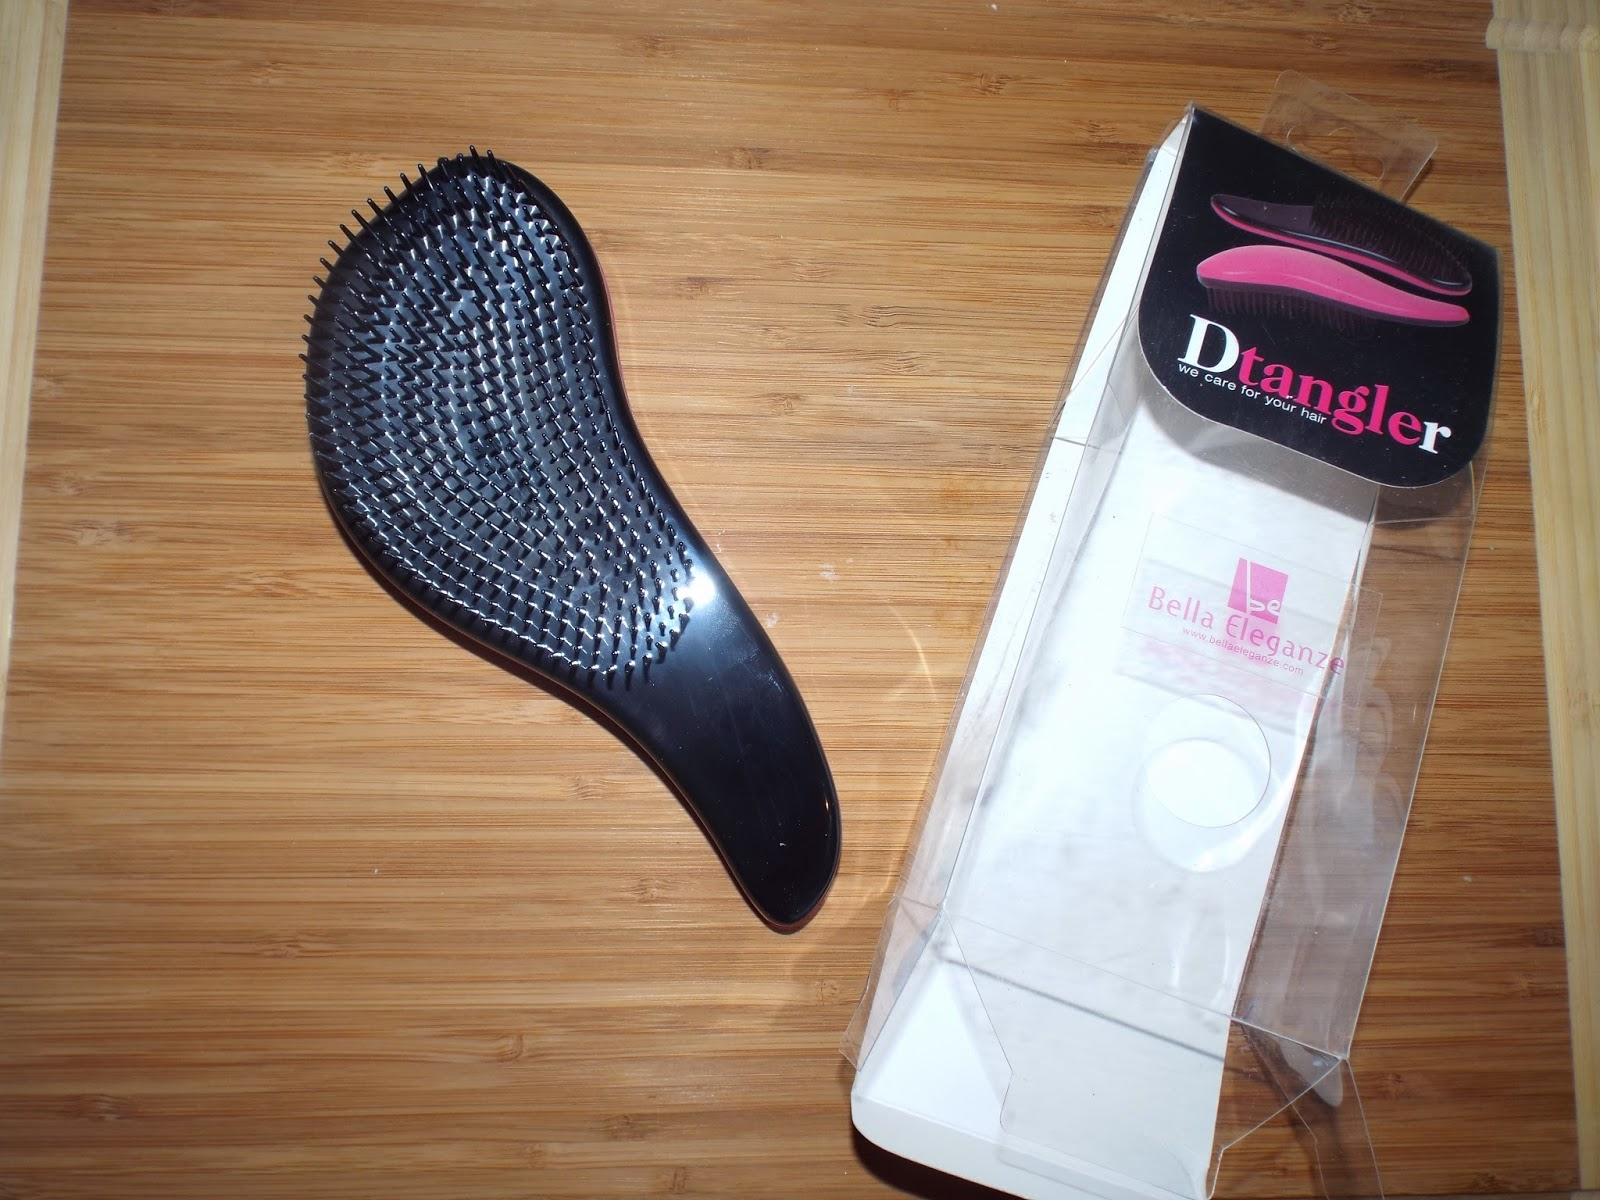 Dtangler: Bella Eleganze Brush